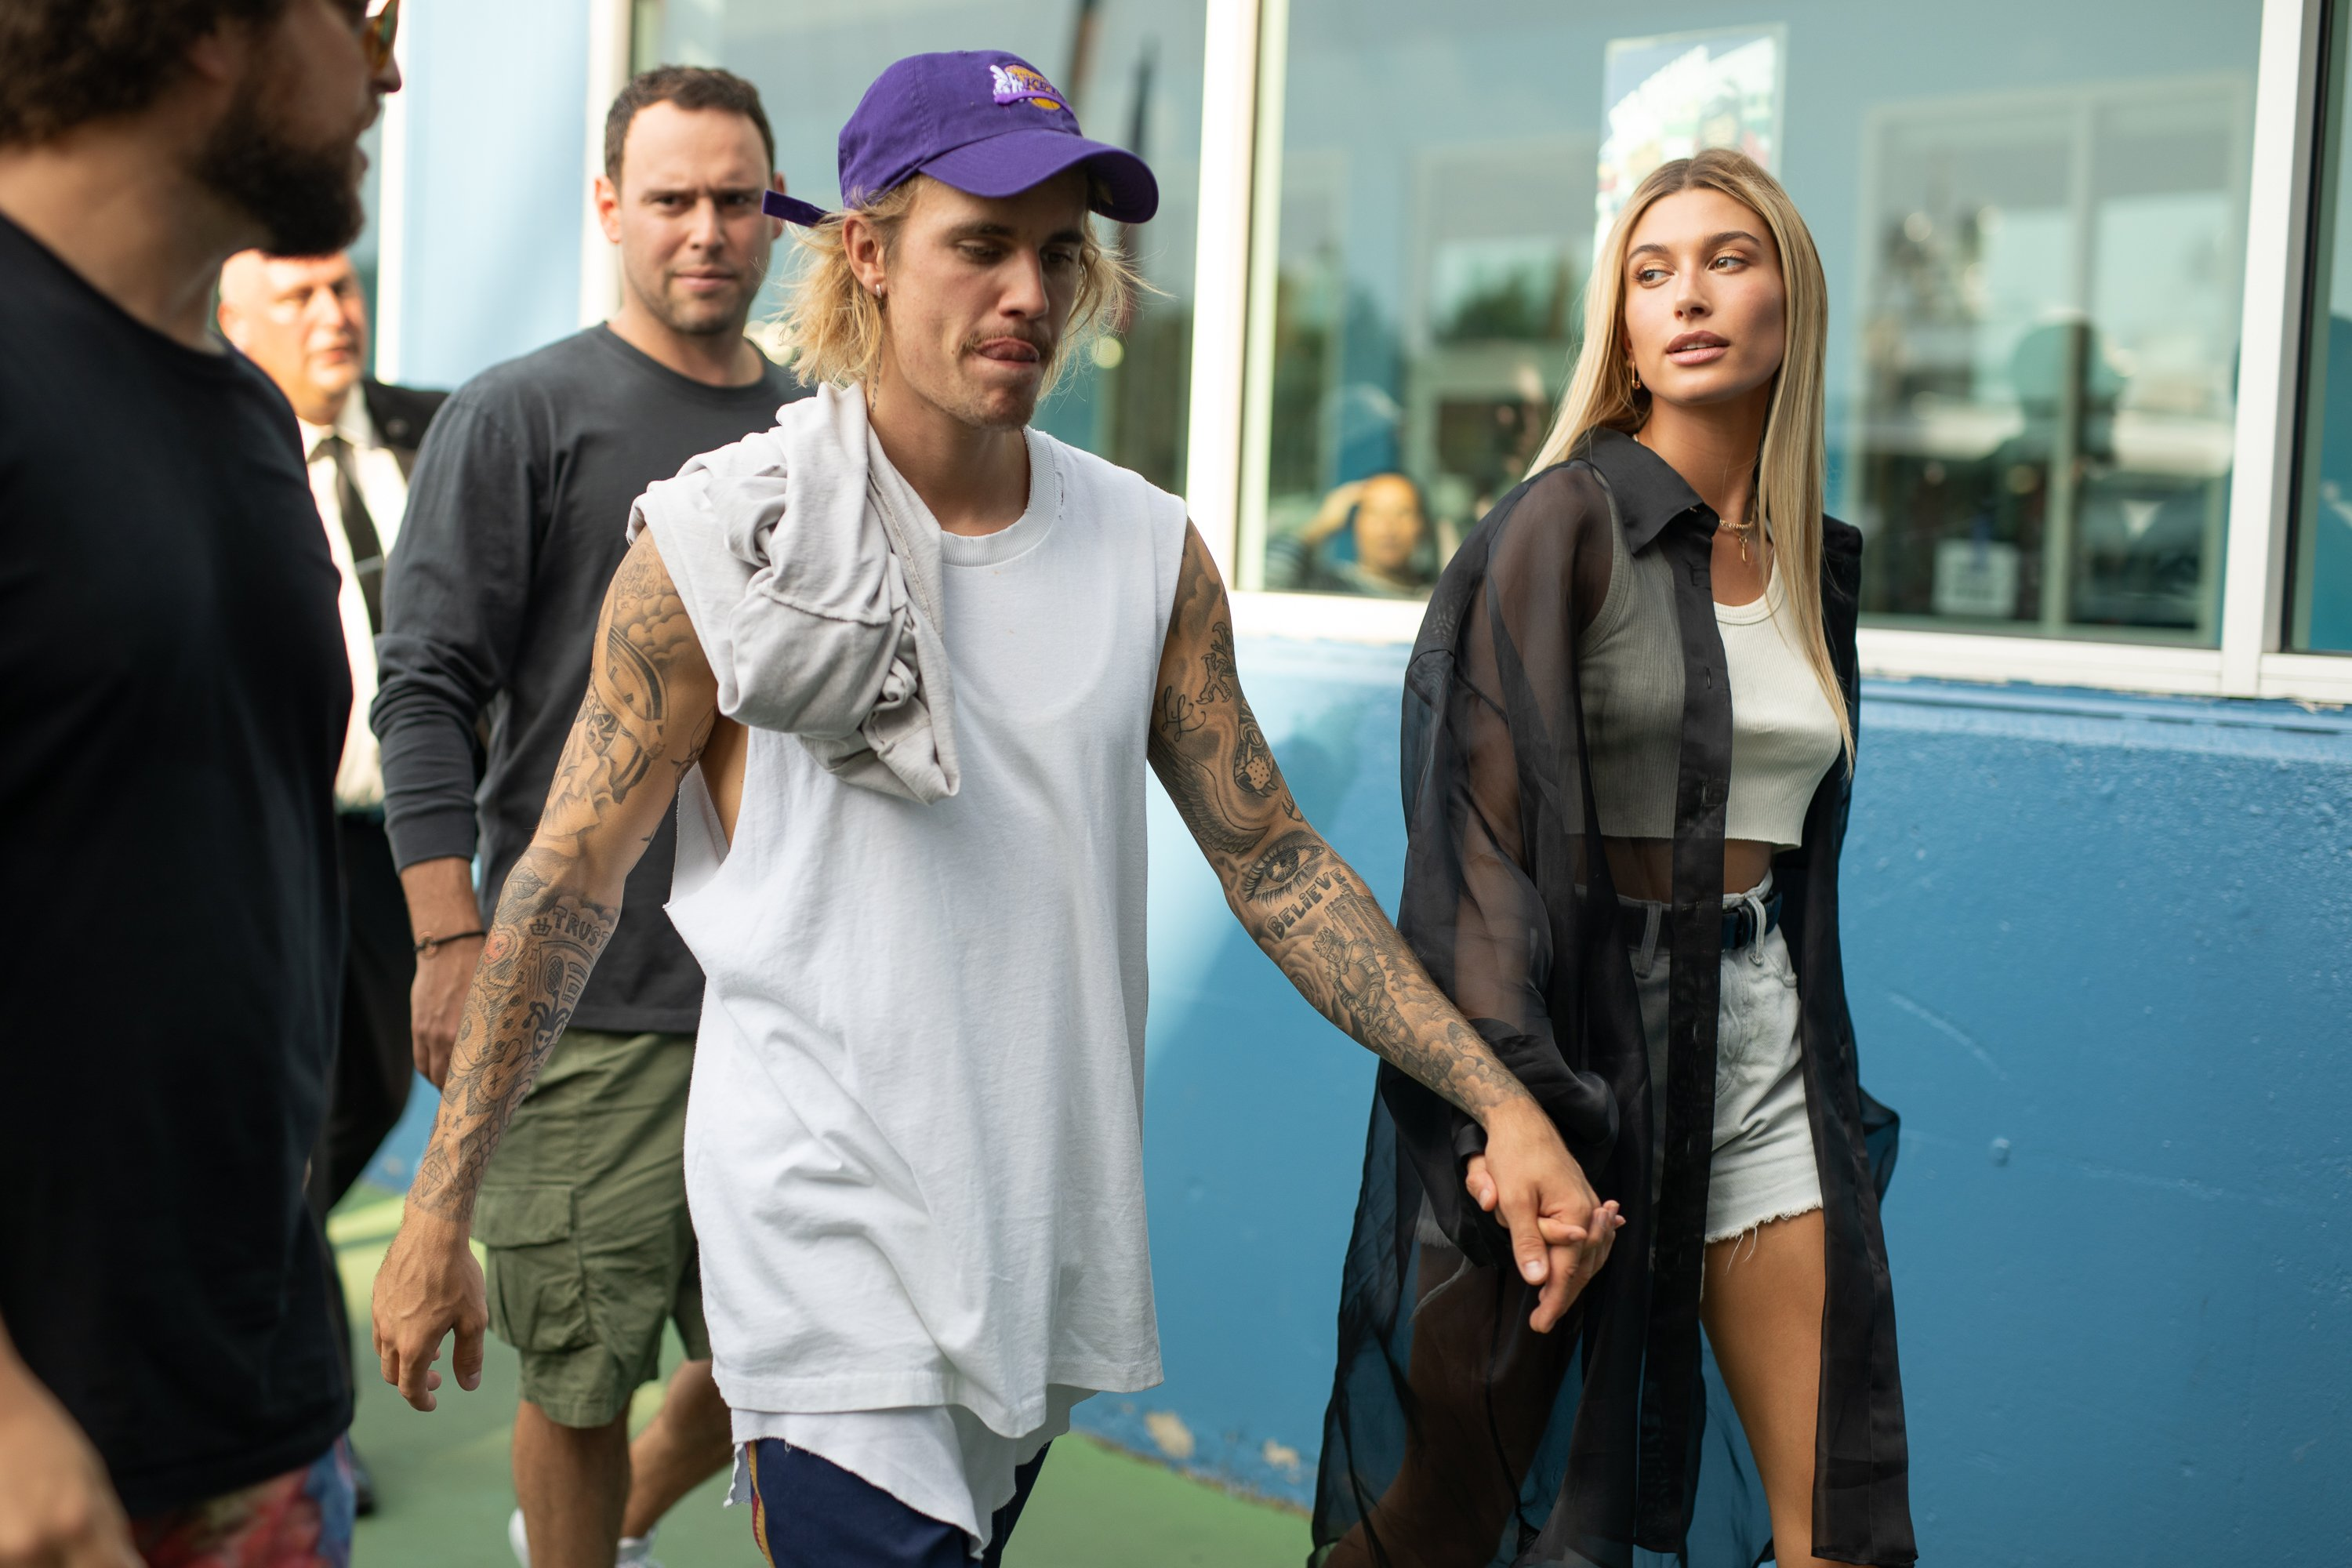 Justin Bieber and model-wife Hailey Bieber walking on the street while holding hands. | Photo: Getty Images